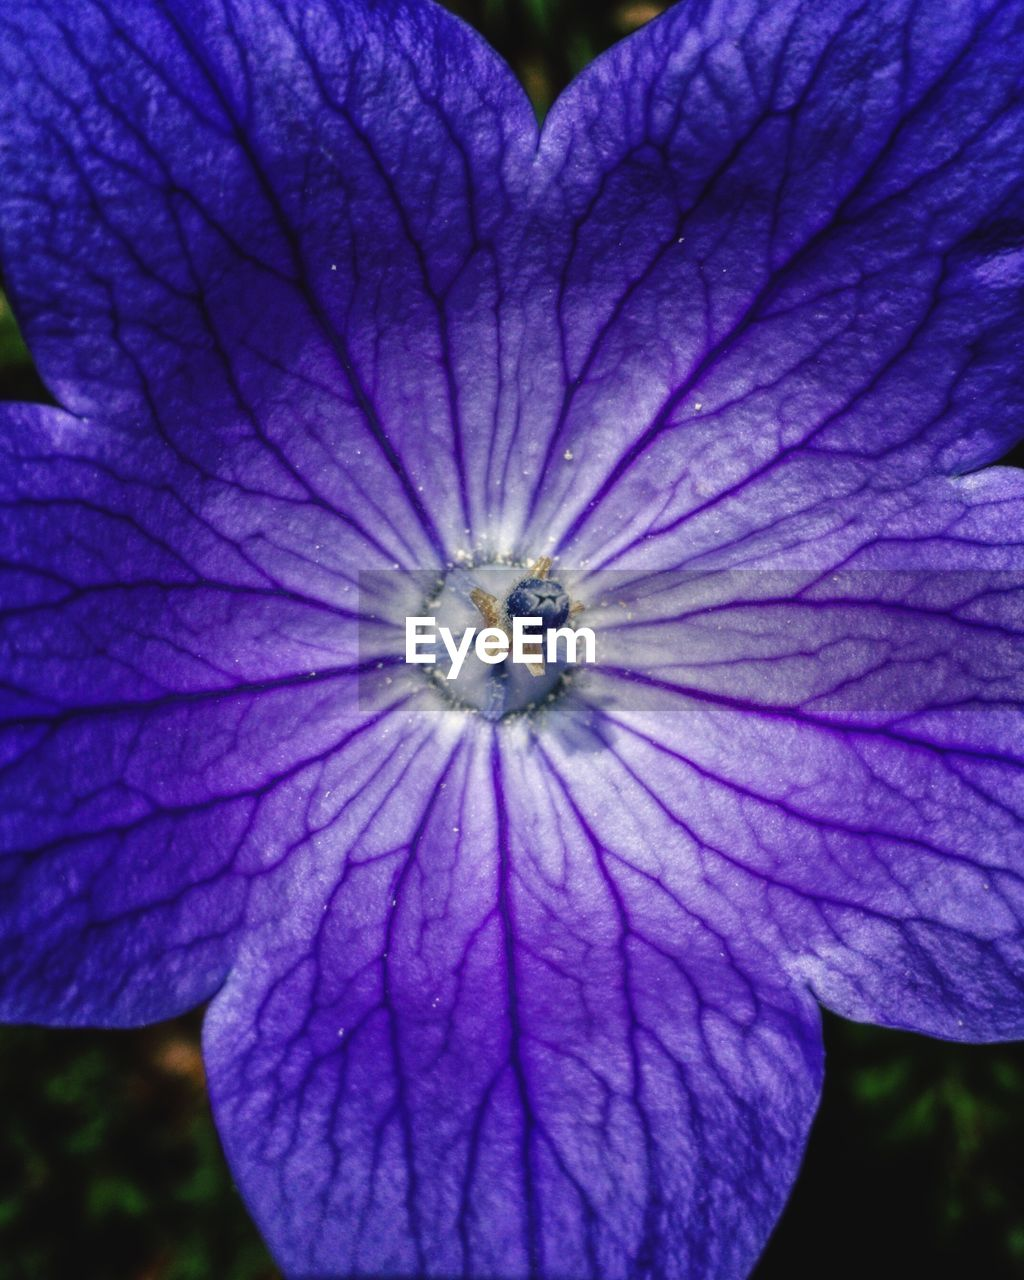 flower, flowering plant, purple, beauty in nature, plant, fragility, vulnerability, petal, growth, close-up, flower head, inflorescence, freshness, no people, nature, day, focus on foreground, outdoors, pollen